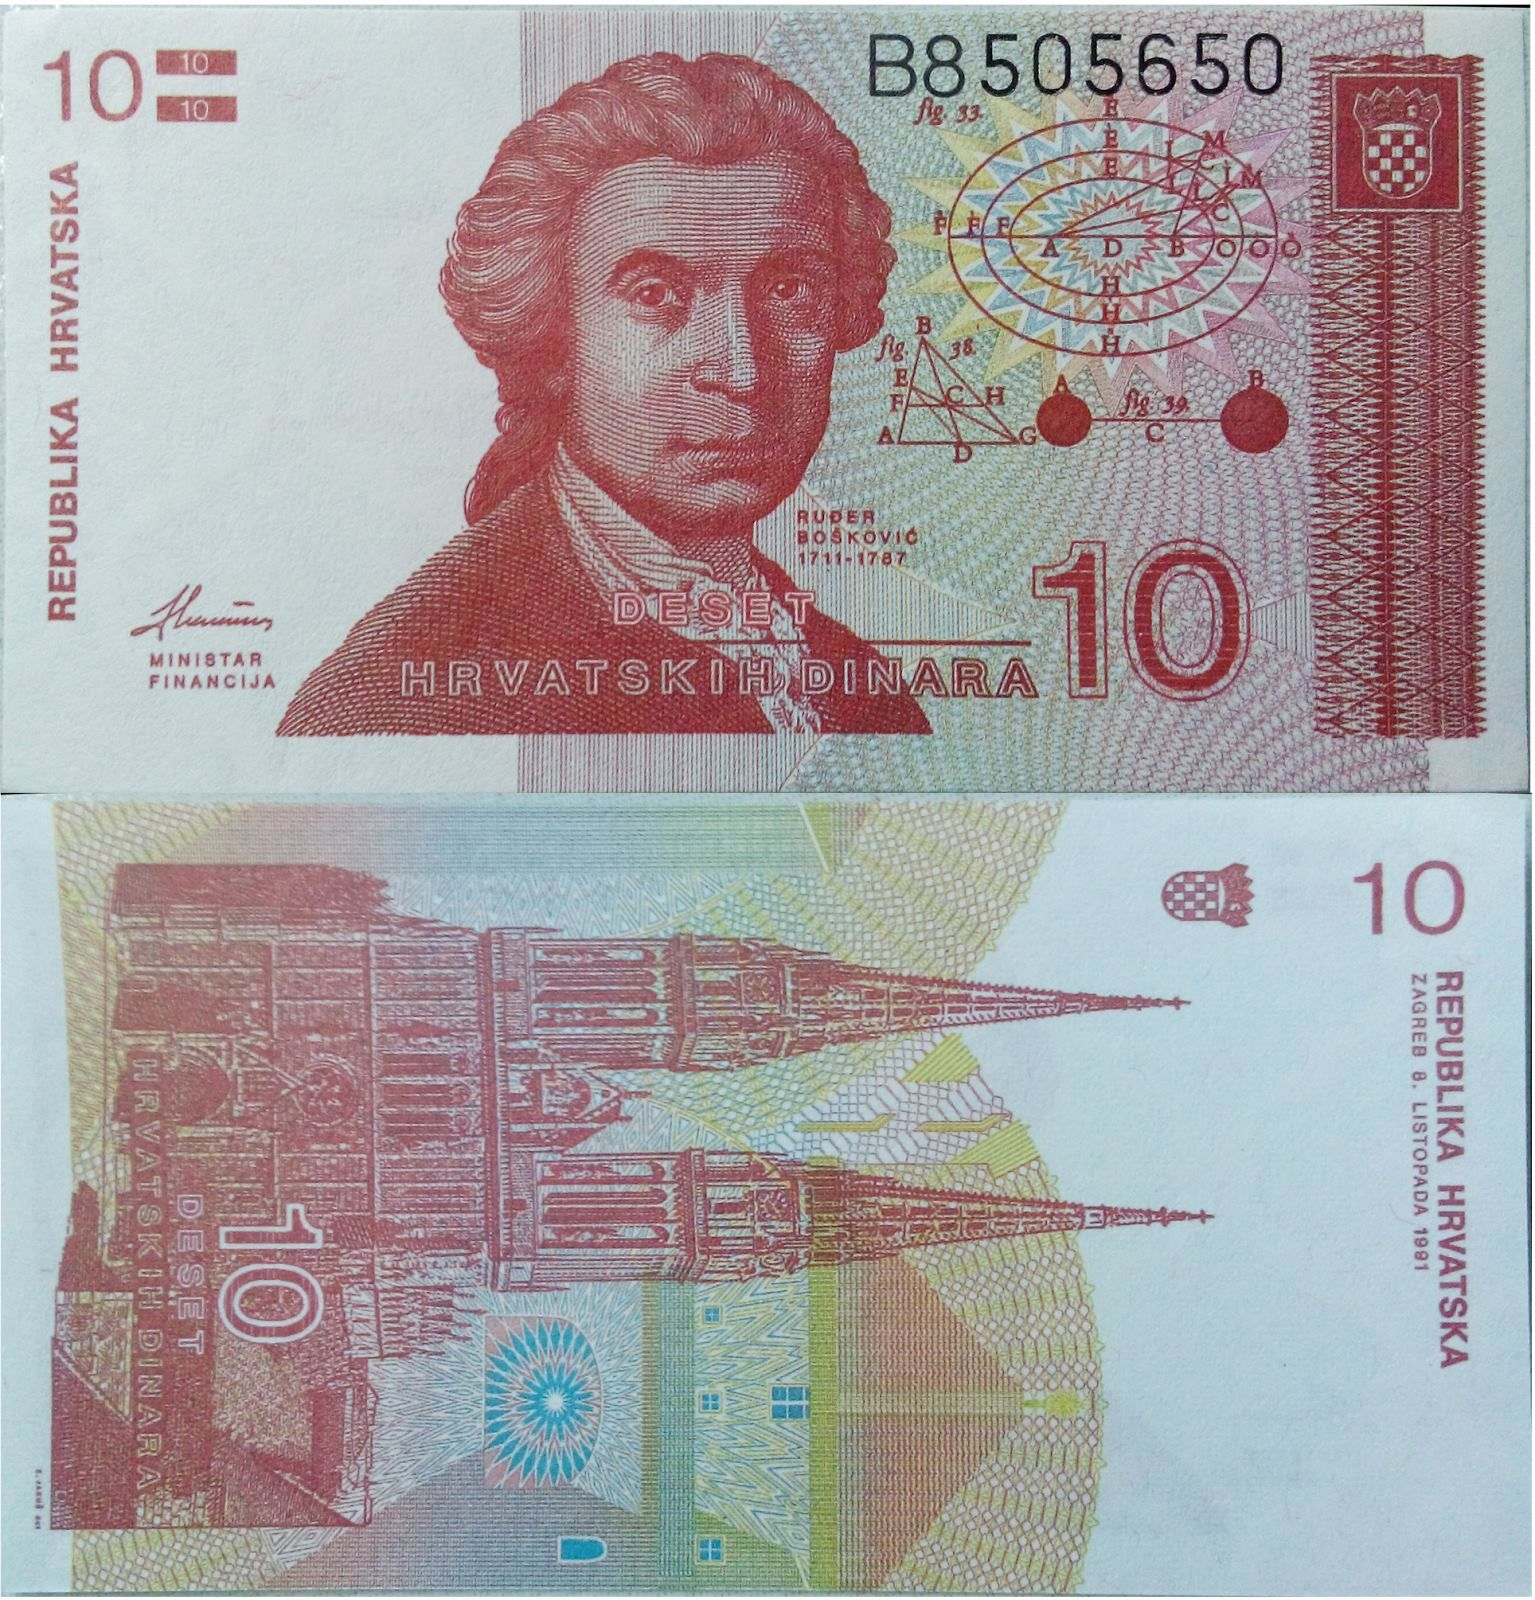 Croatia Bank Notes Banknotes Money Money Collection